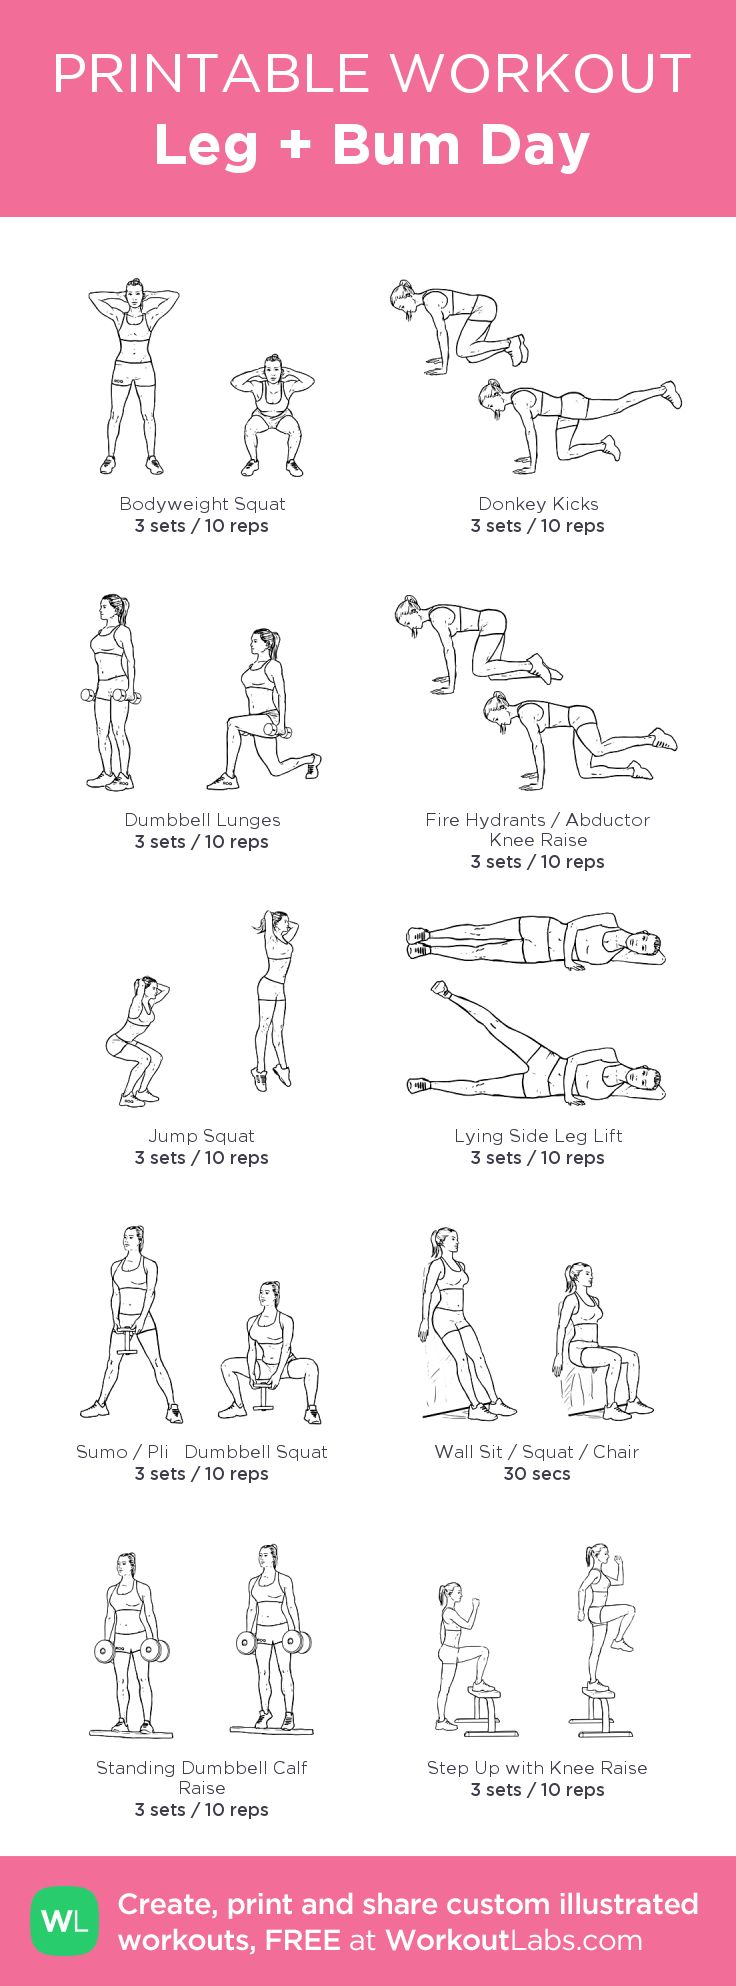 Leg + Butt Day Workout